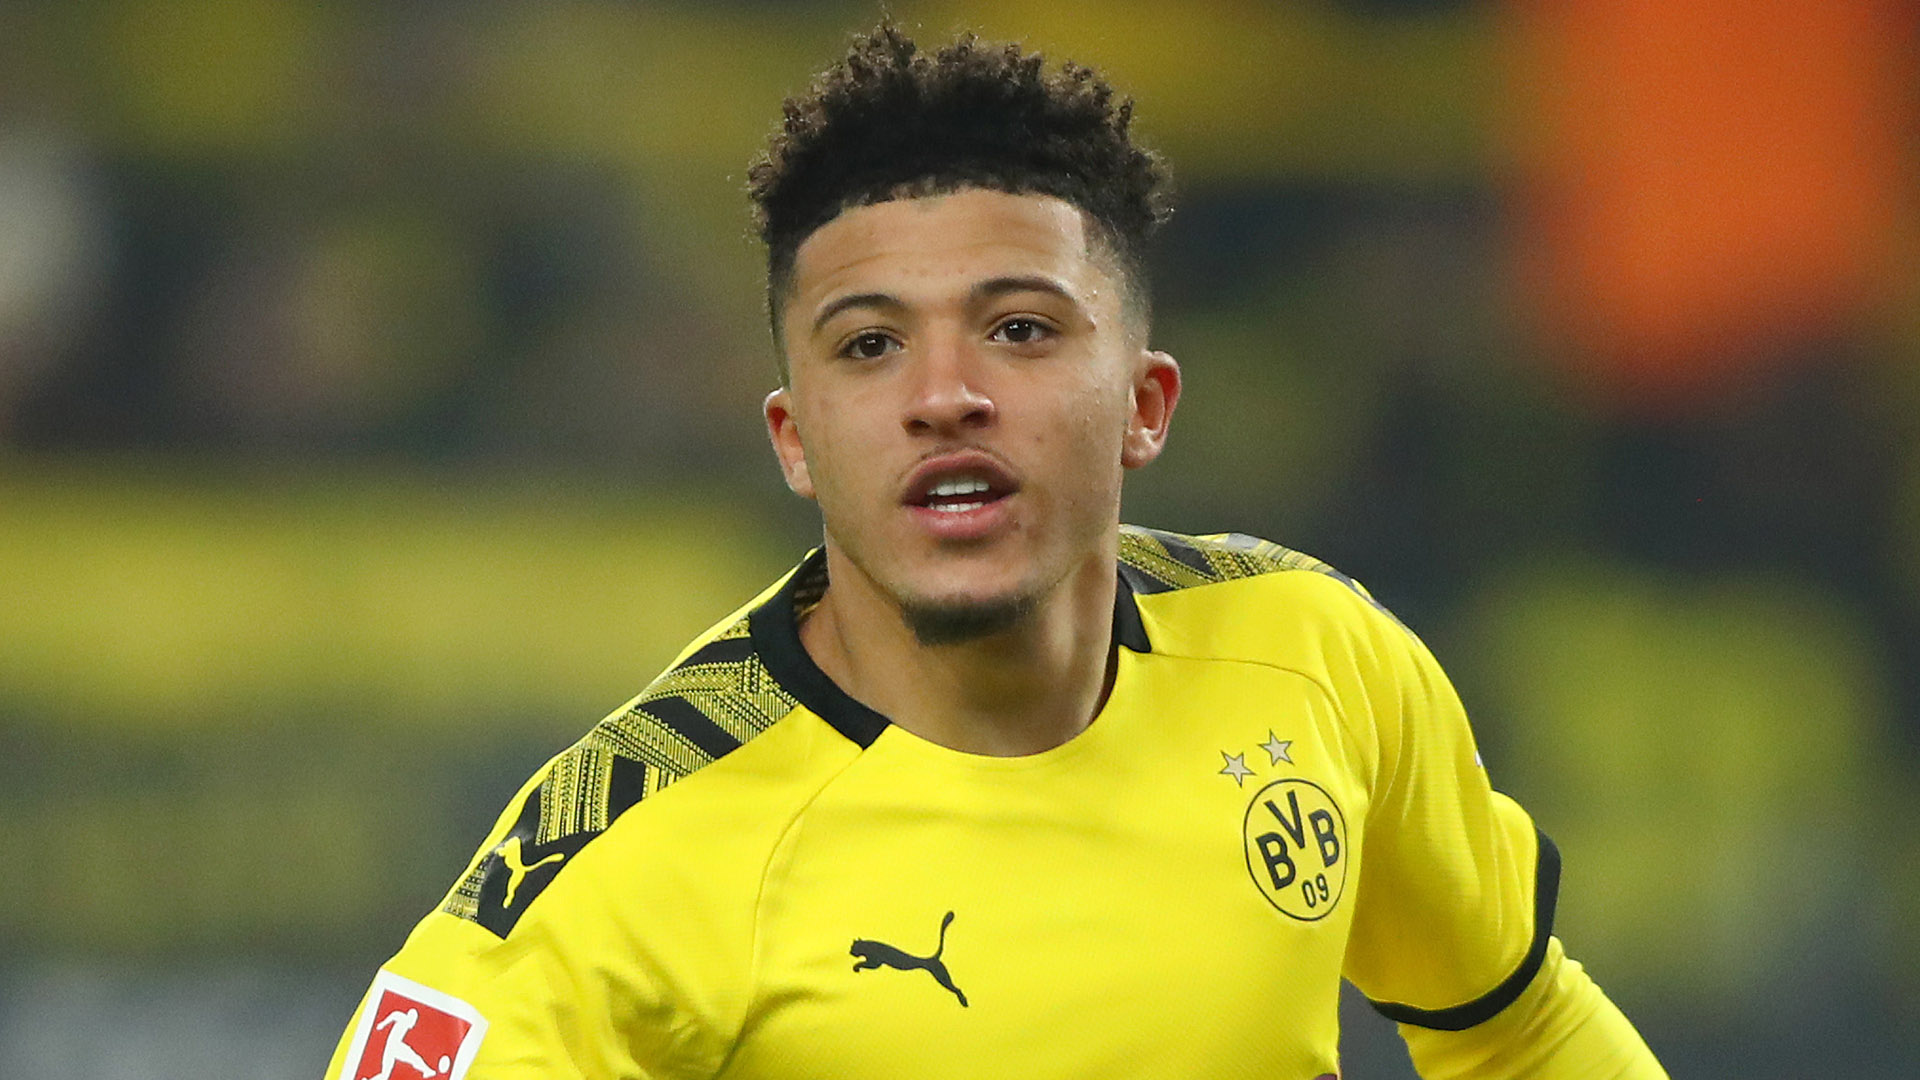 Jadon Sancho agrees personal contract with Man United